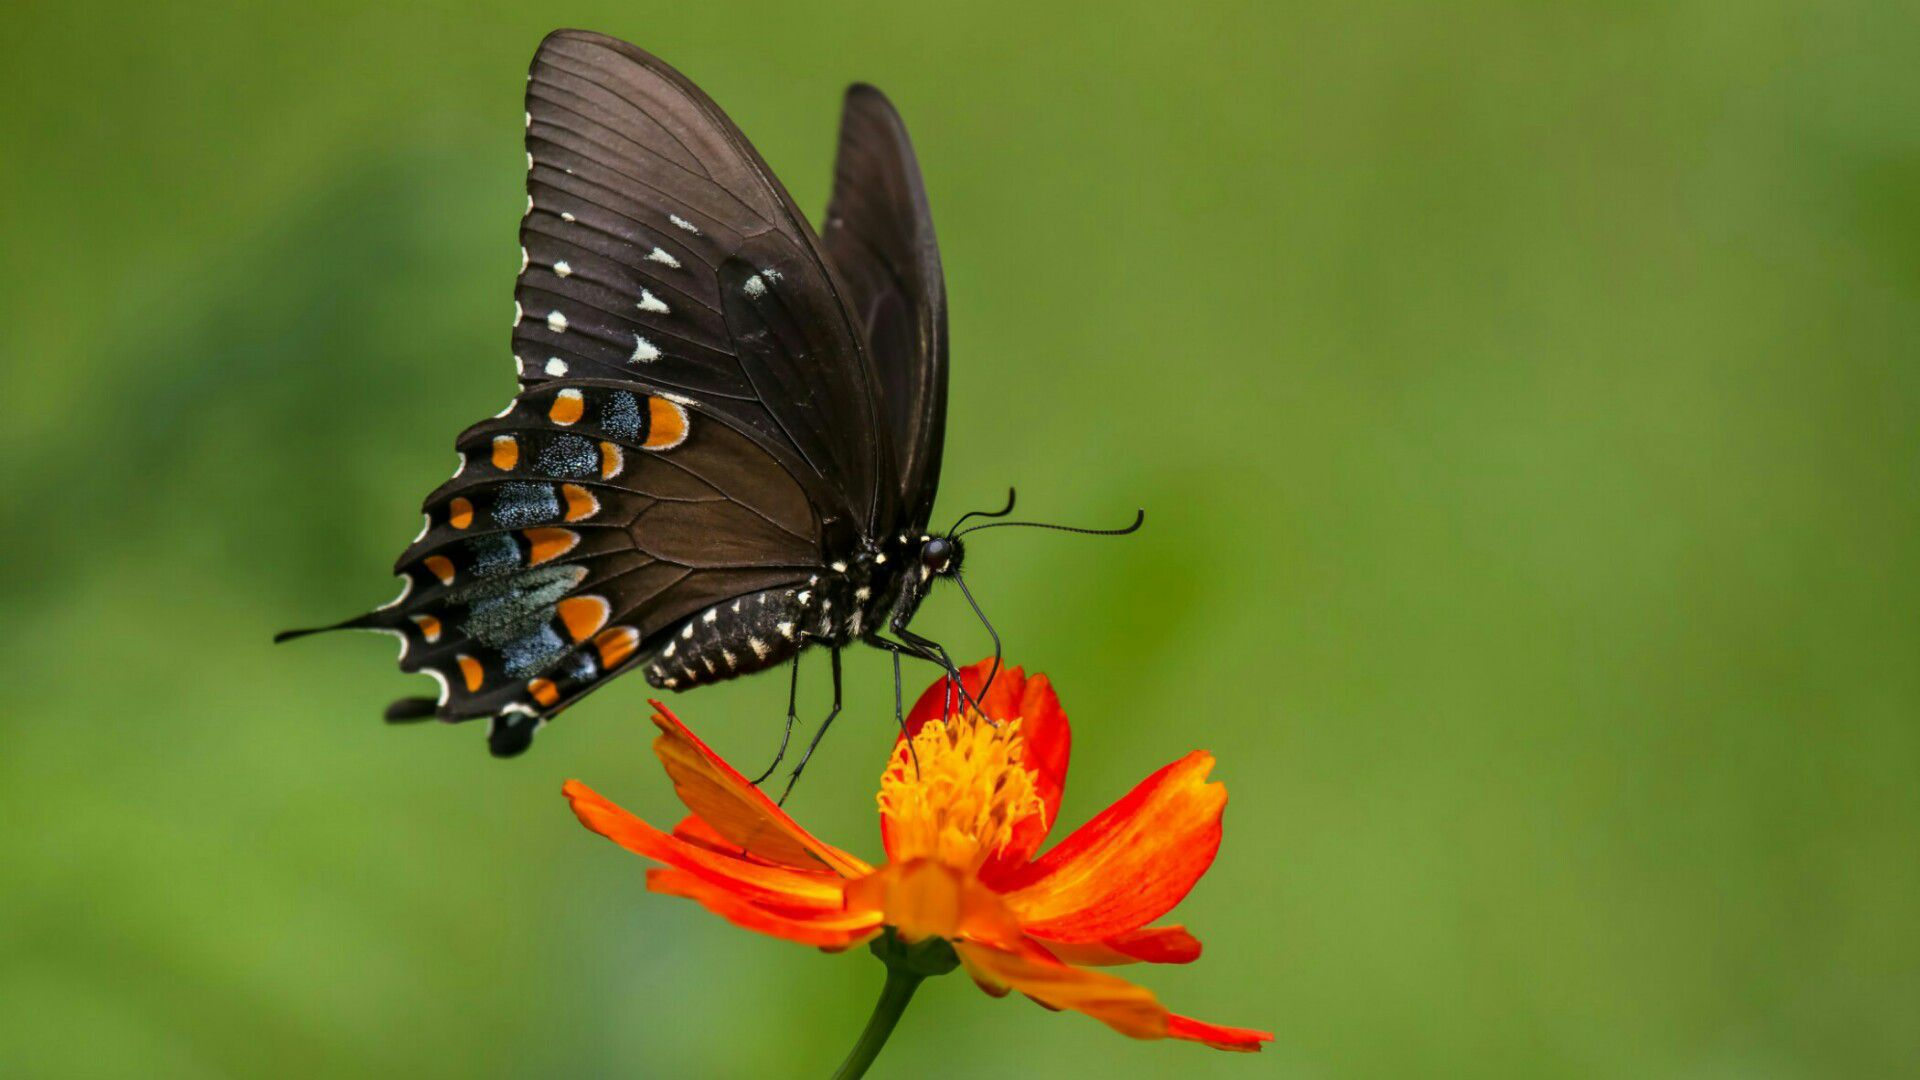 Black Butterfly Wallpapers